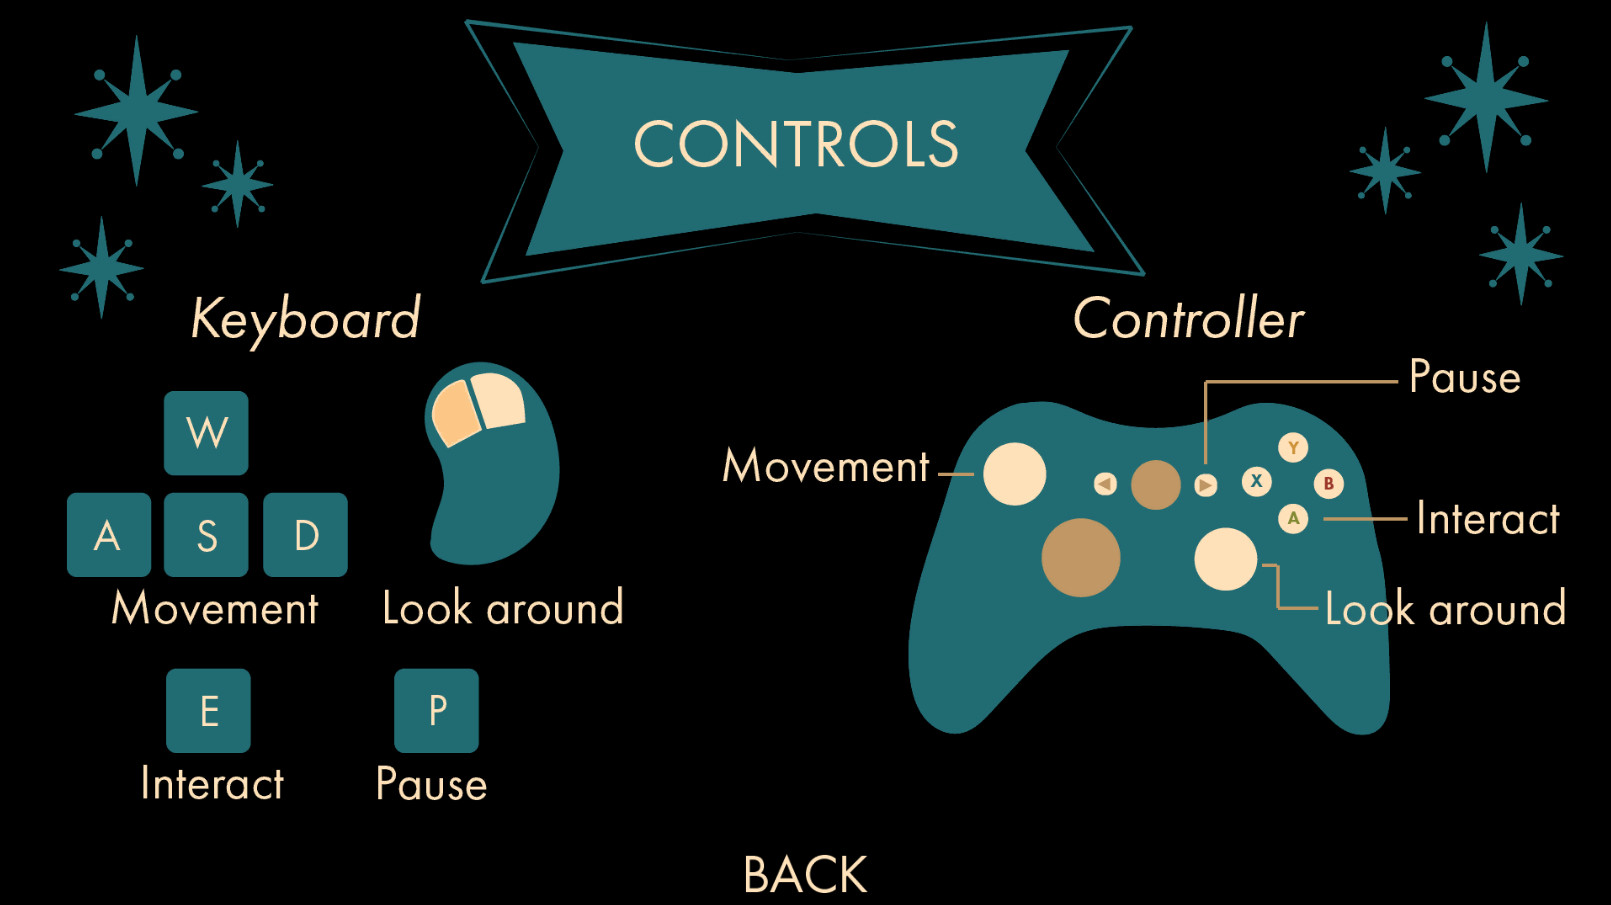 Controls Menu shows both Keyboard and XBOX Controller mapped controls.